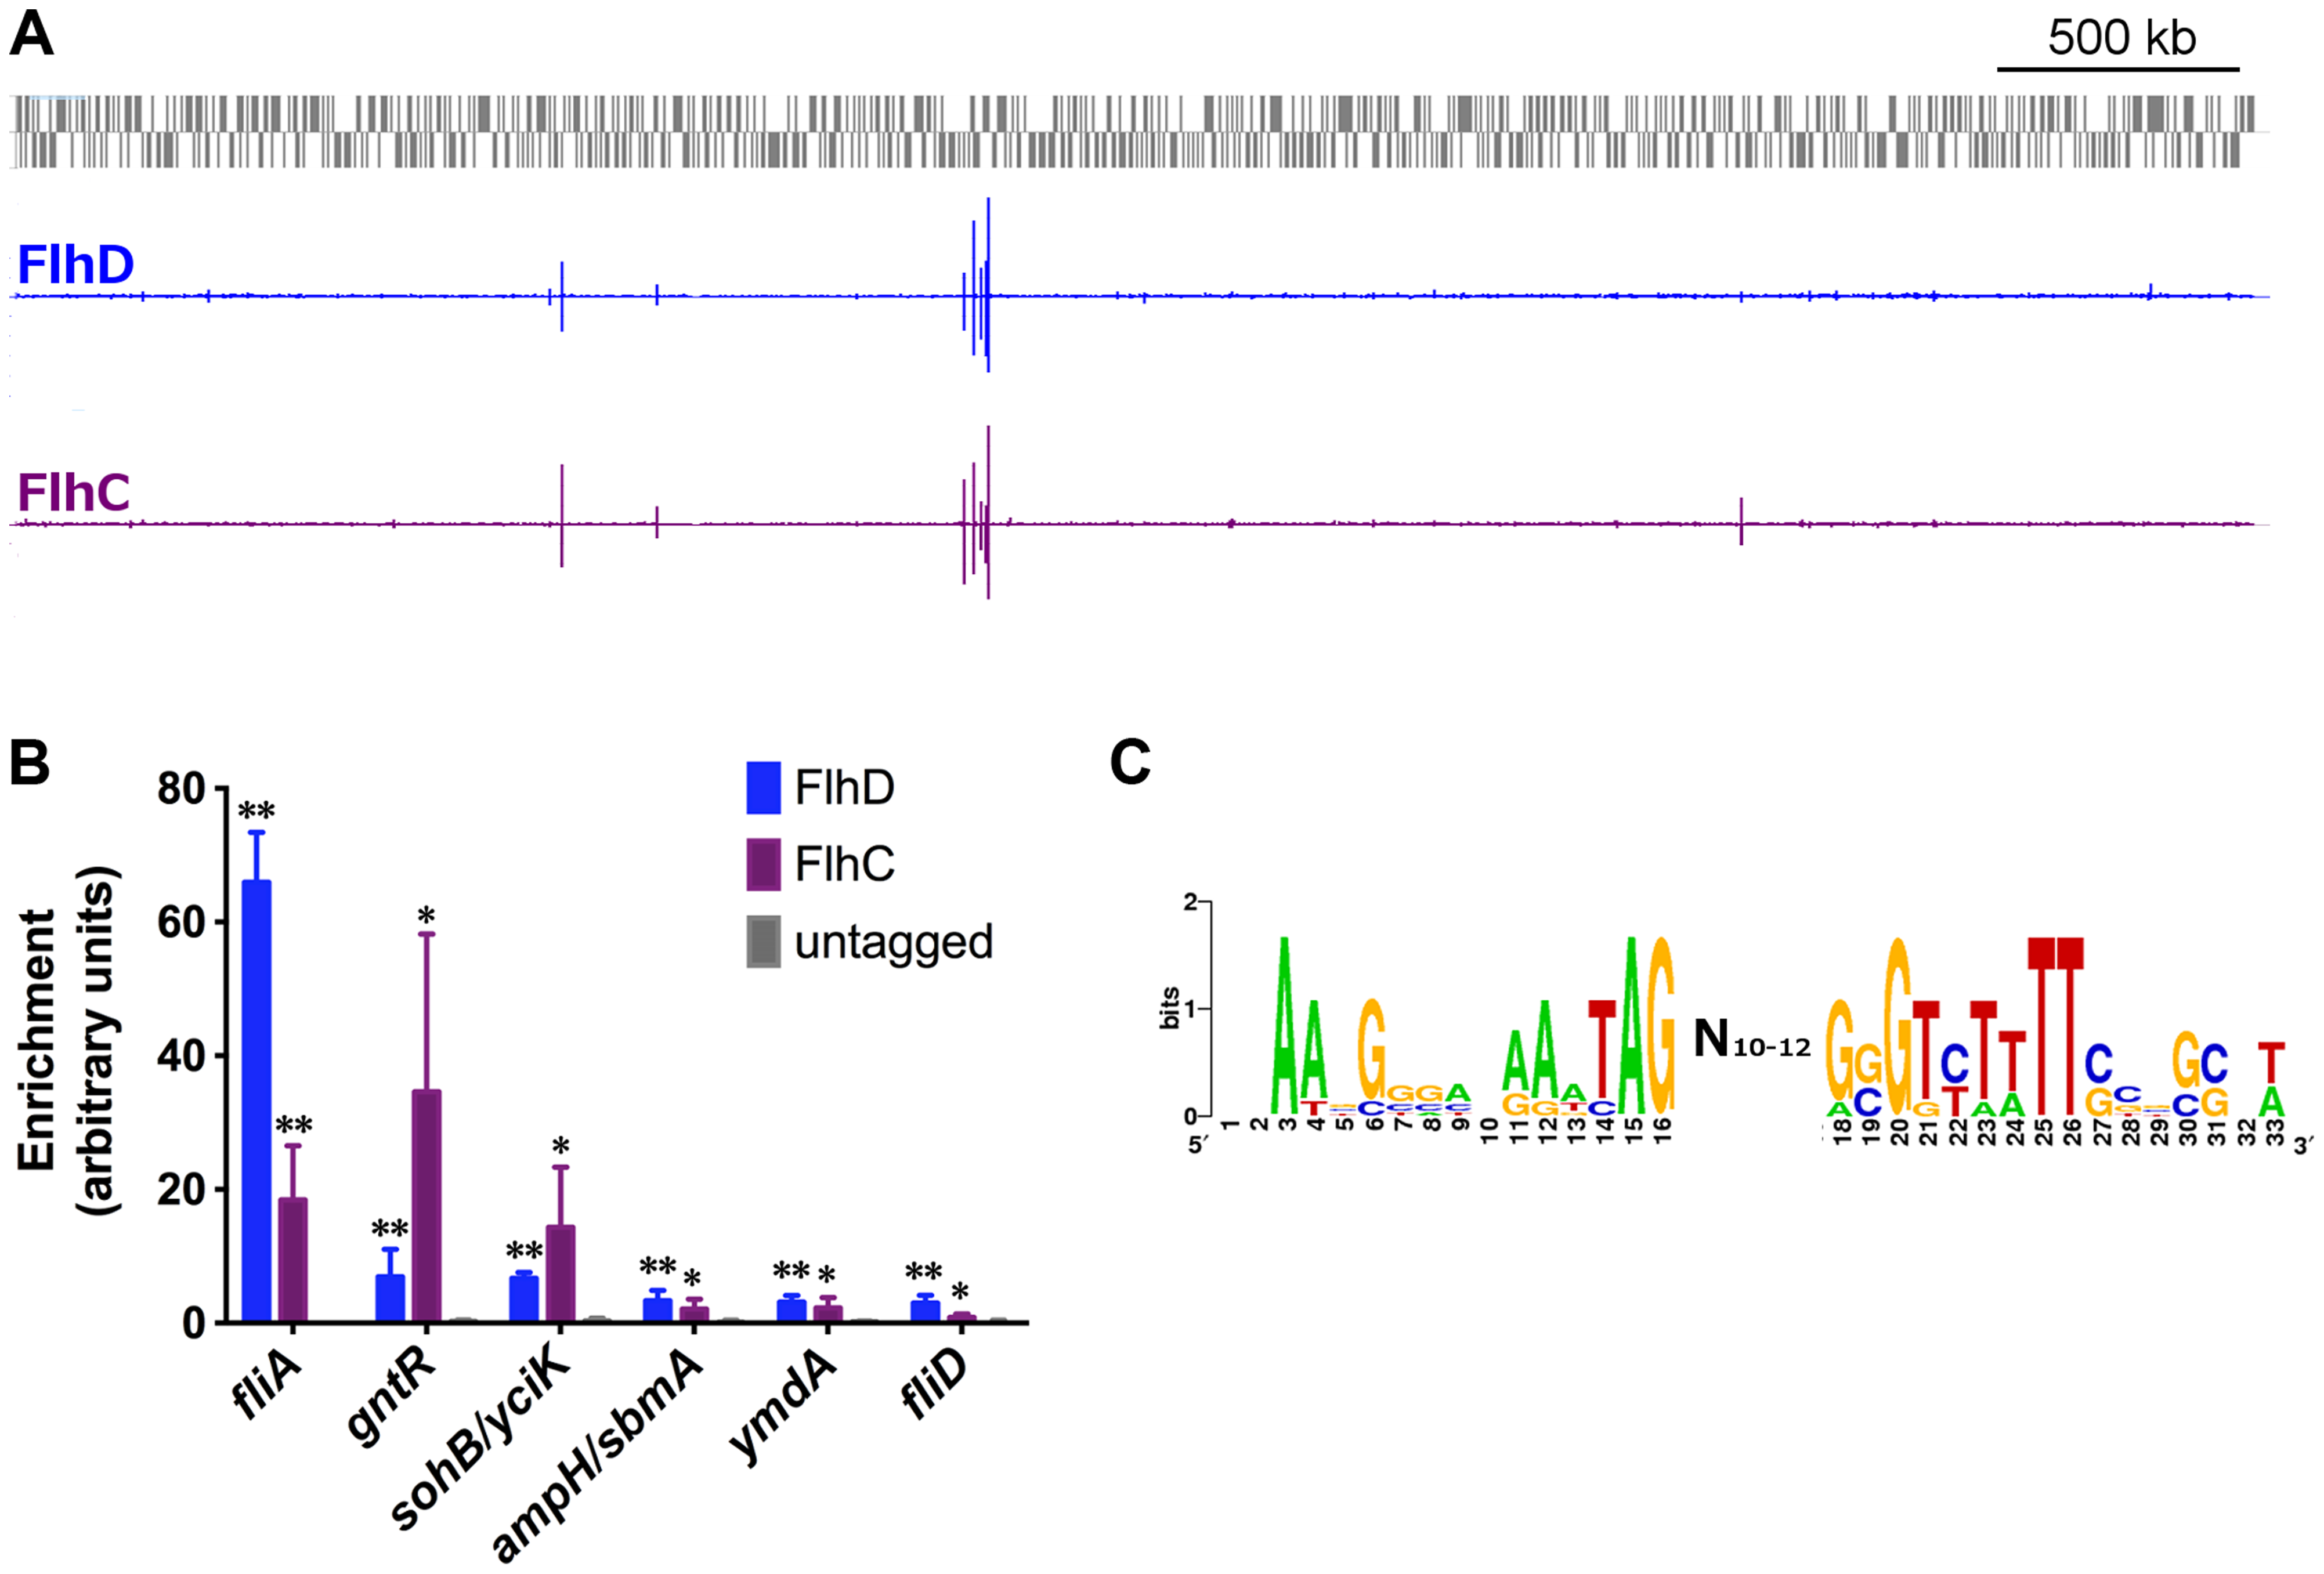 Genome-wide binding of FlhD and FlhC.